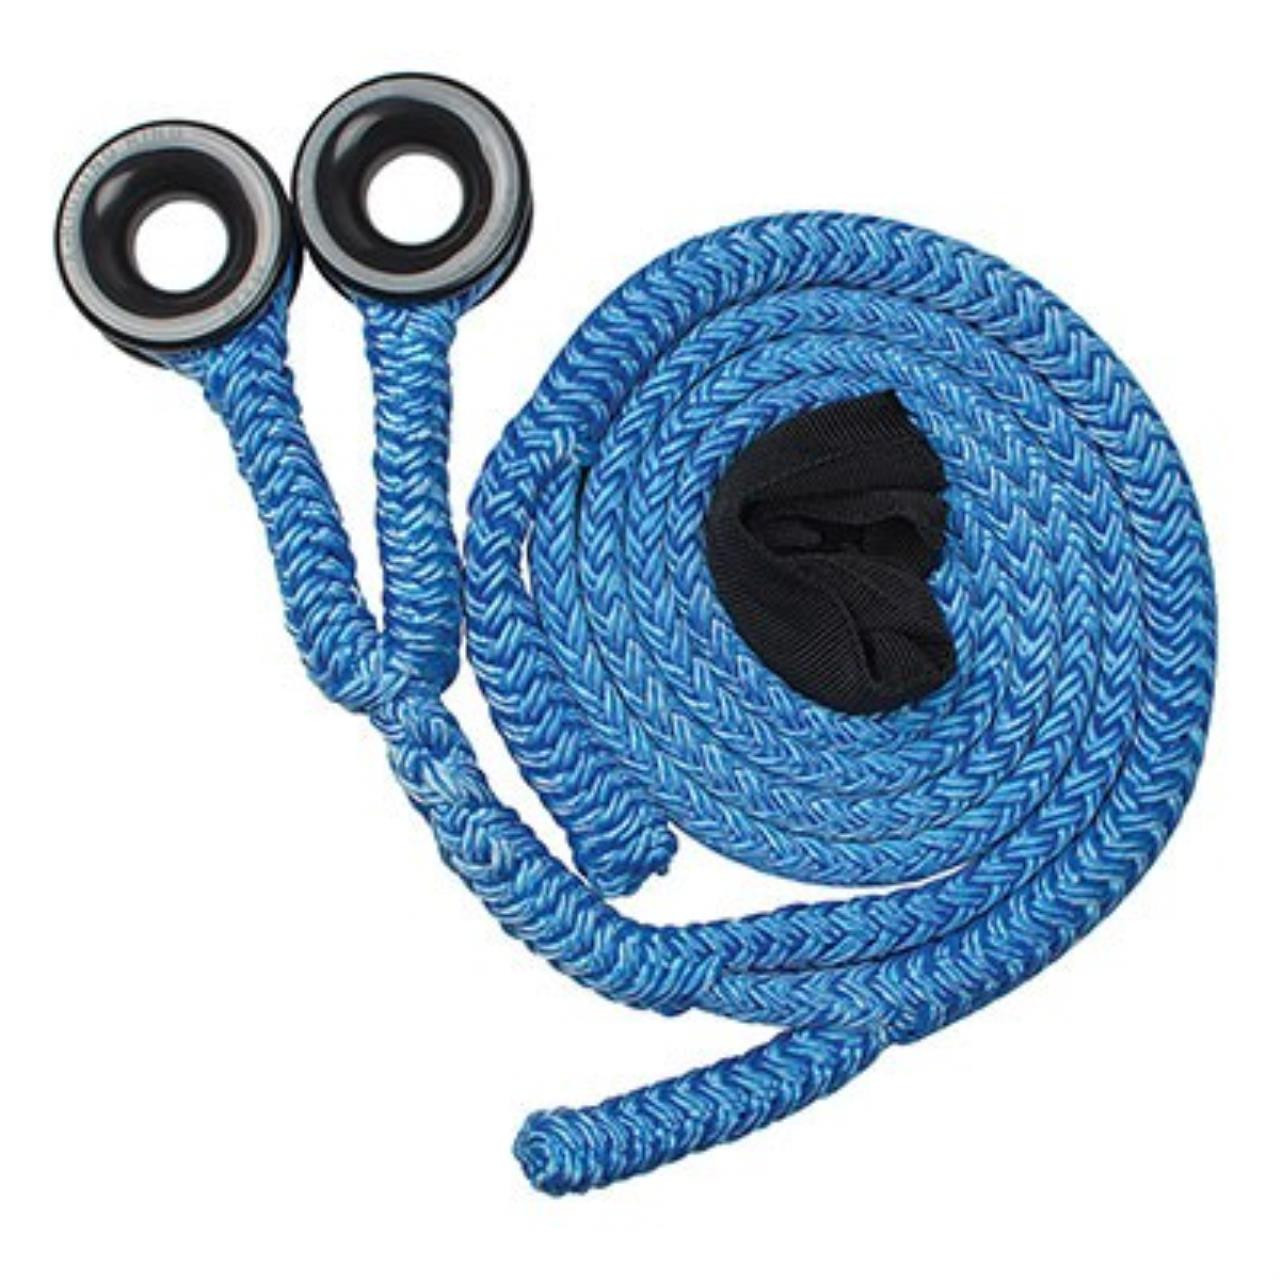 3-5FT DOUBLE HEAD LARGE X-RING WHOOPIE 1/2IN 10X